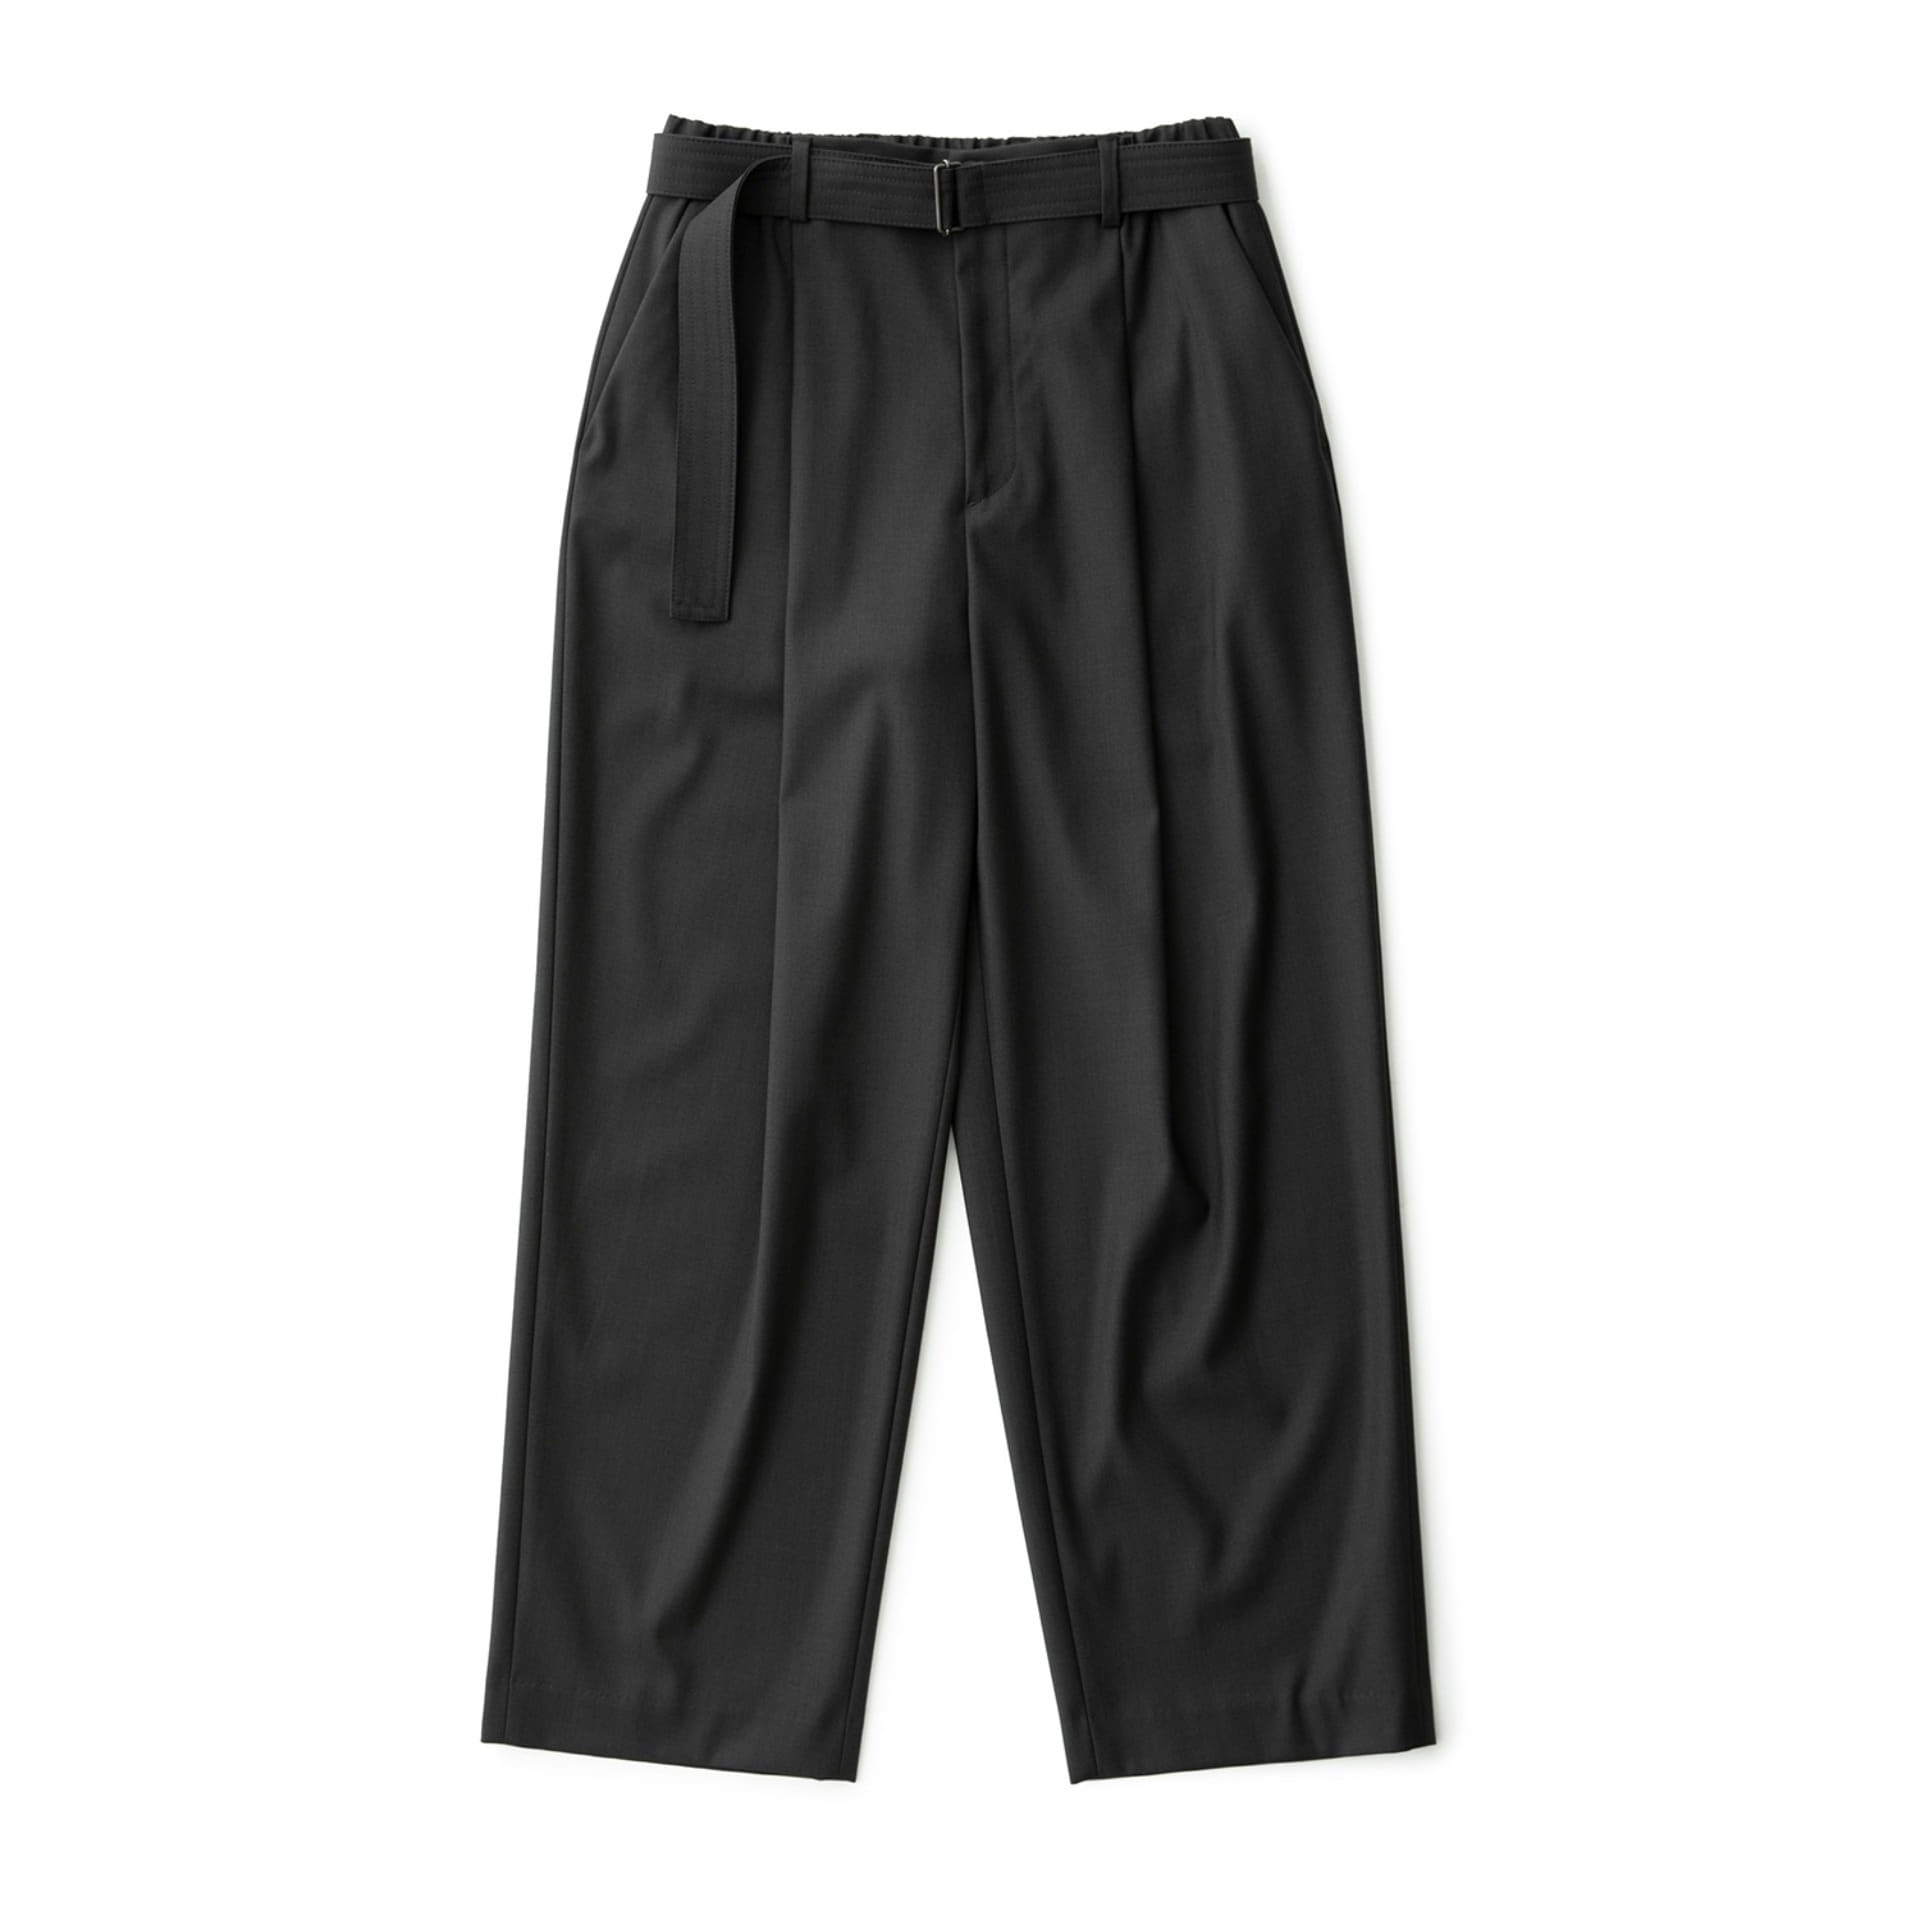 Calm Banded Pants (Charcoal)